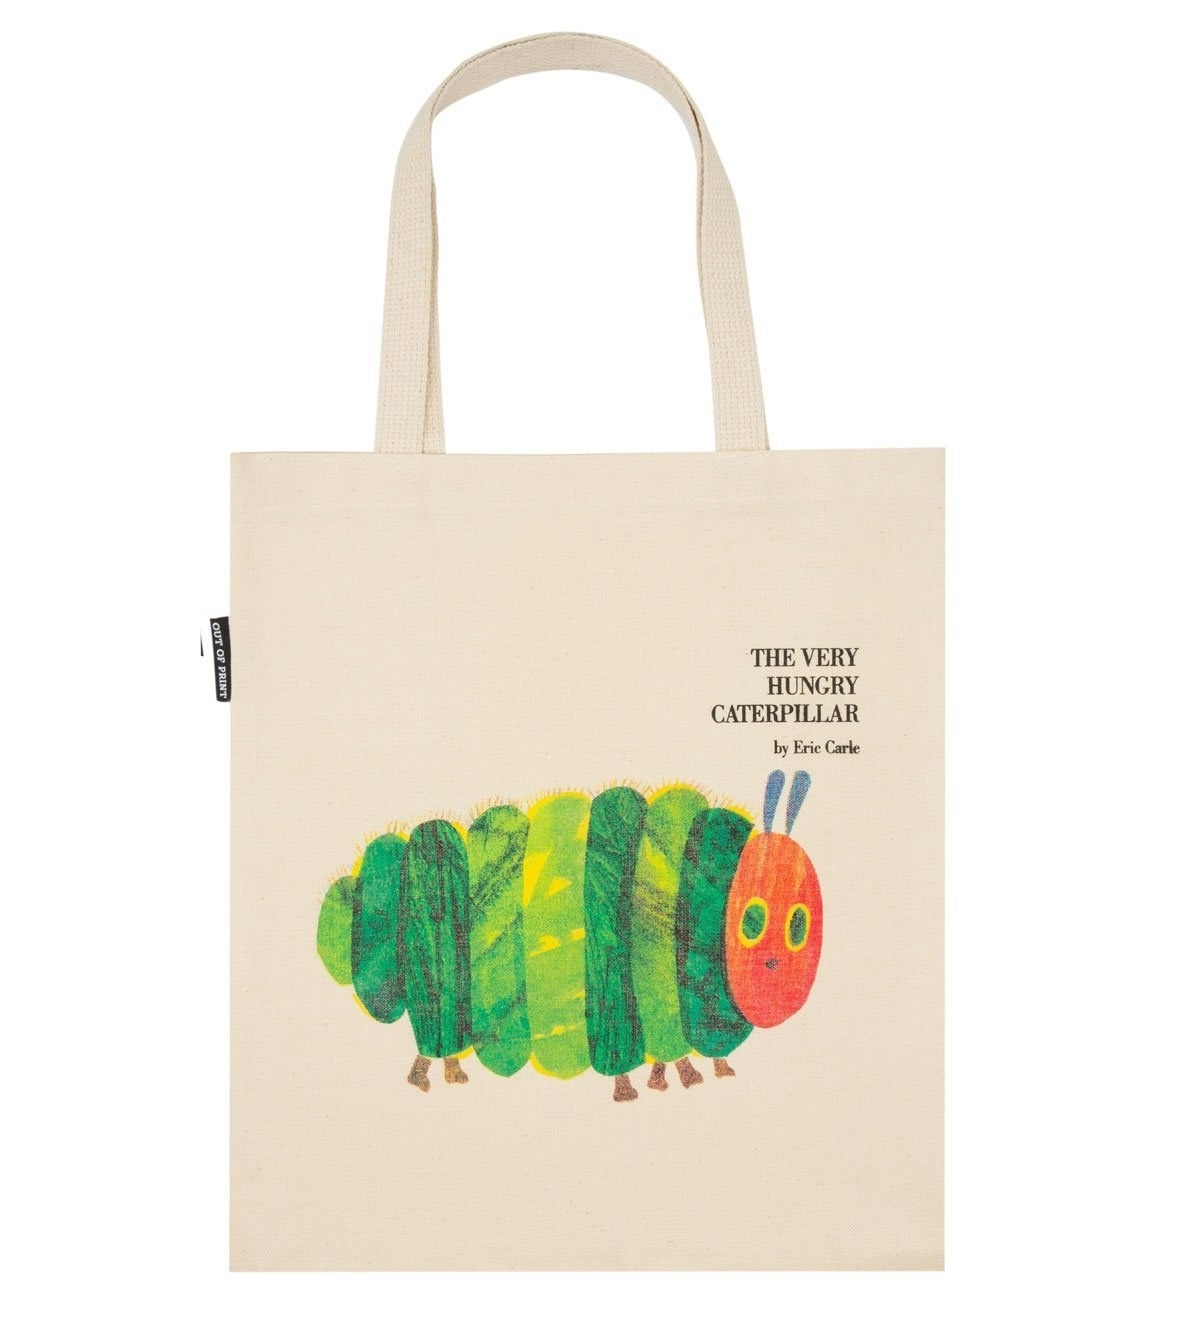 The canvas tote, which has the cover art printed on the front